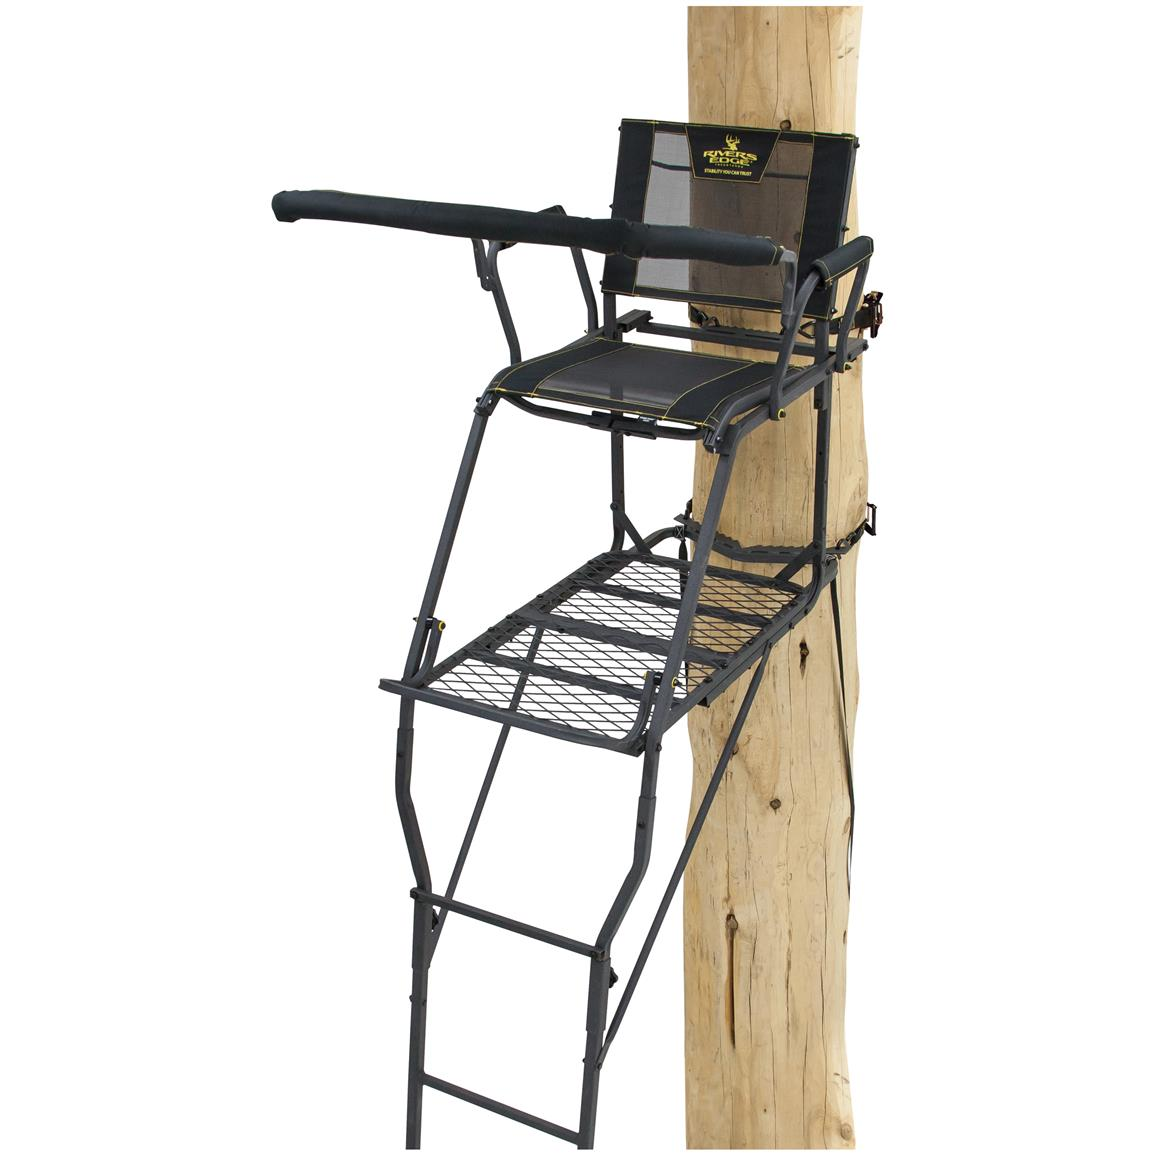 Rivers Edge Syct 17' Ladder Tree Stand